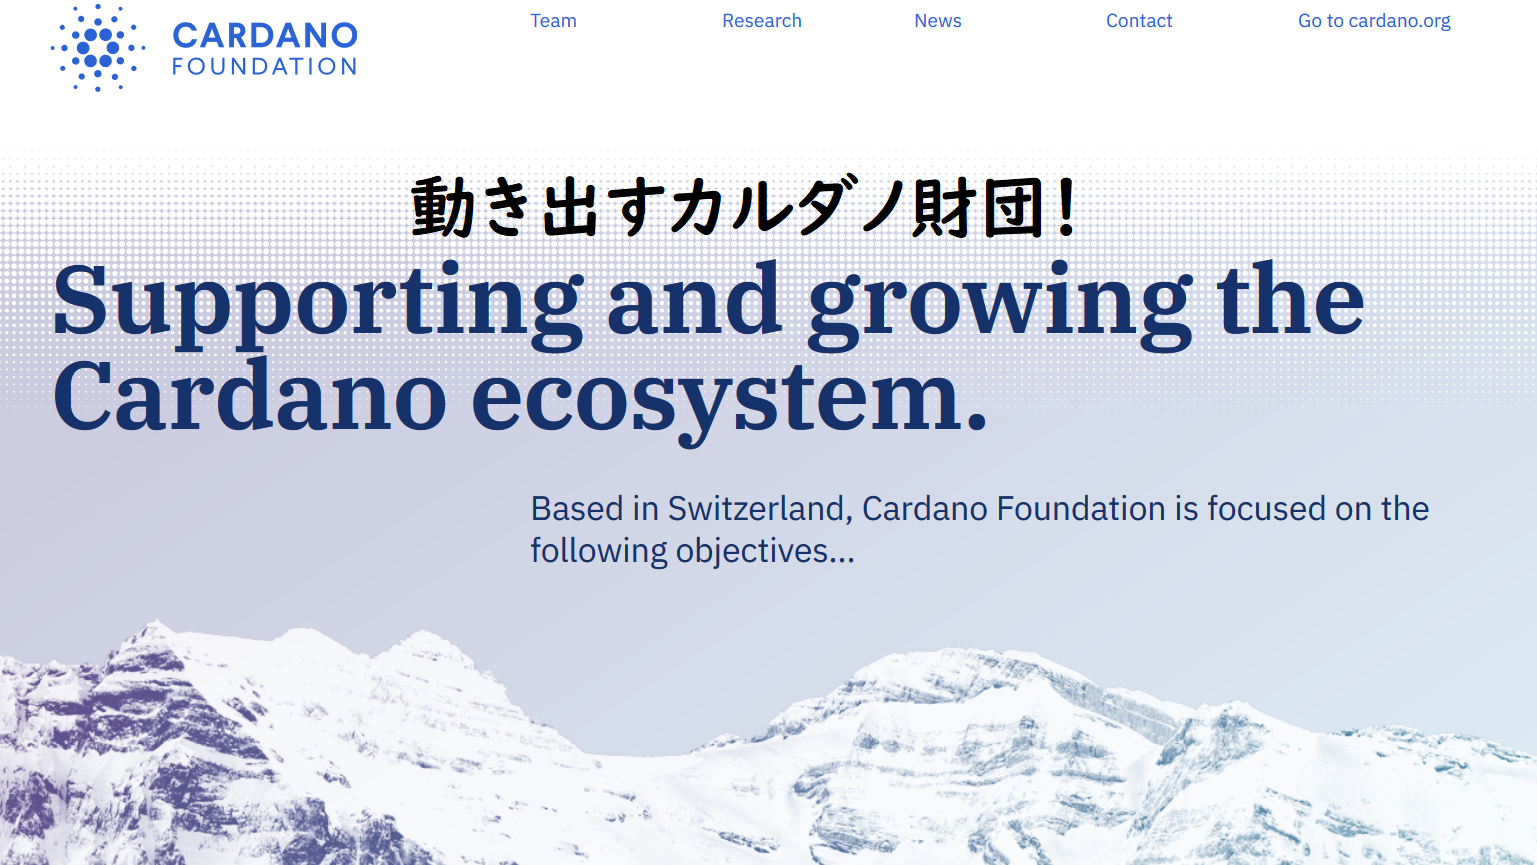 NEW cardanofoundation